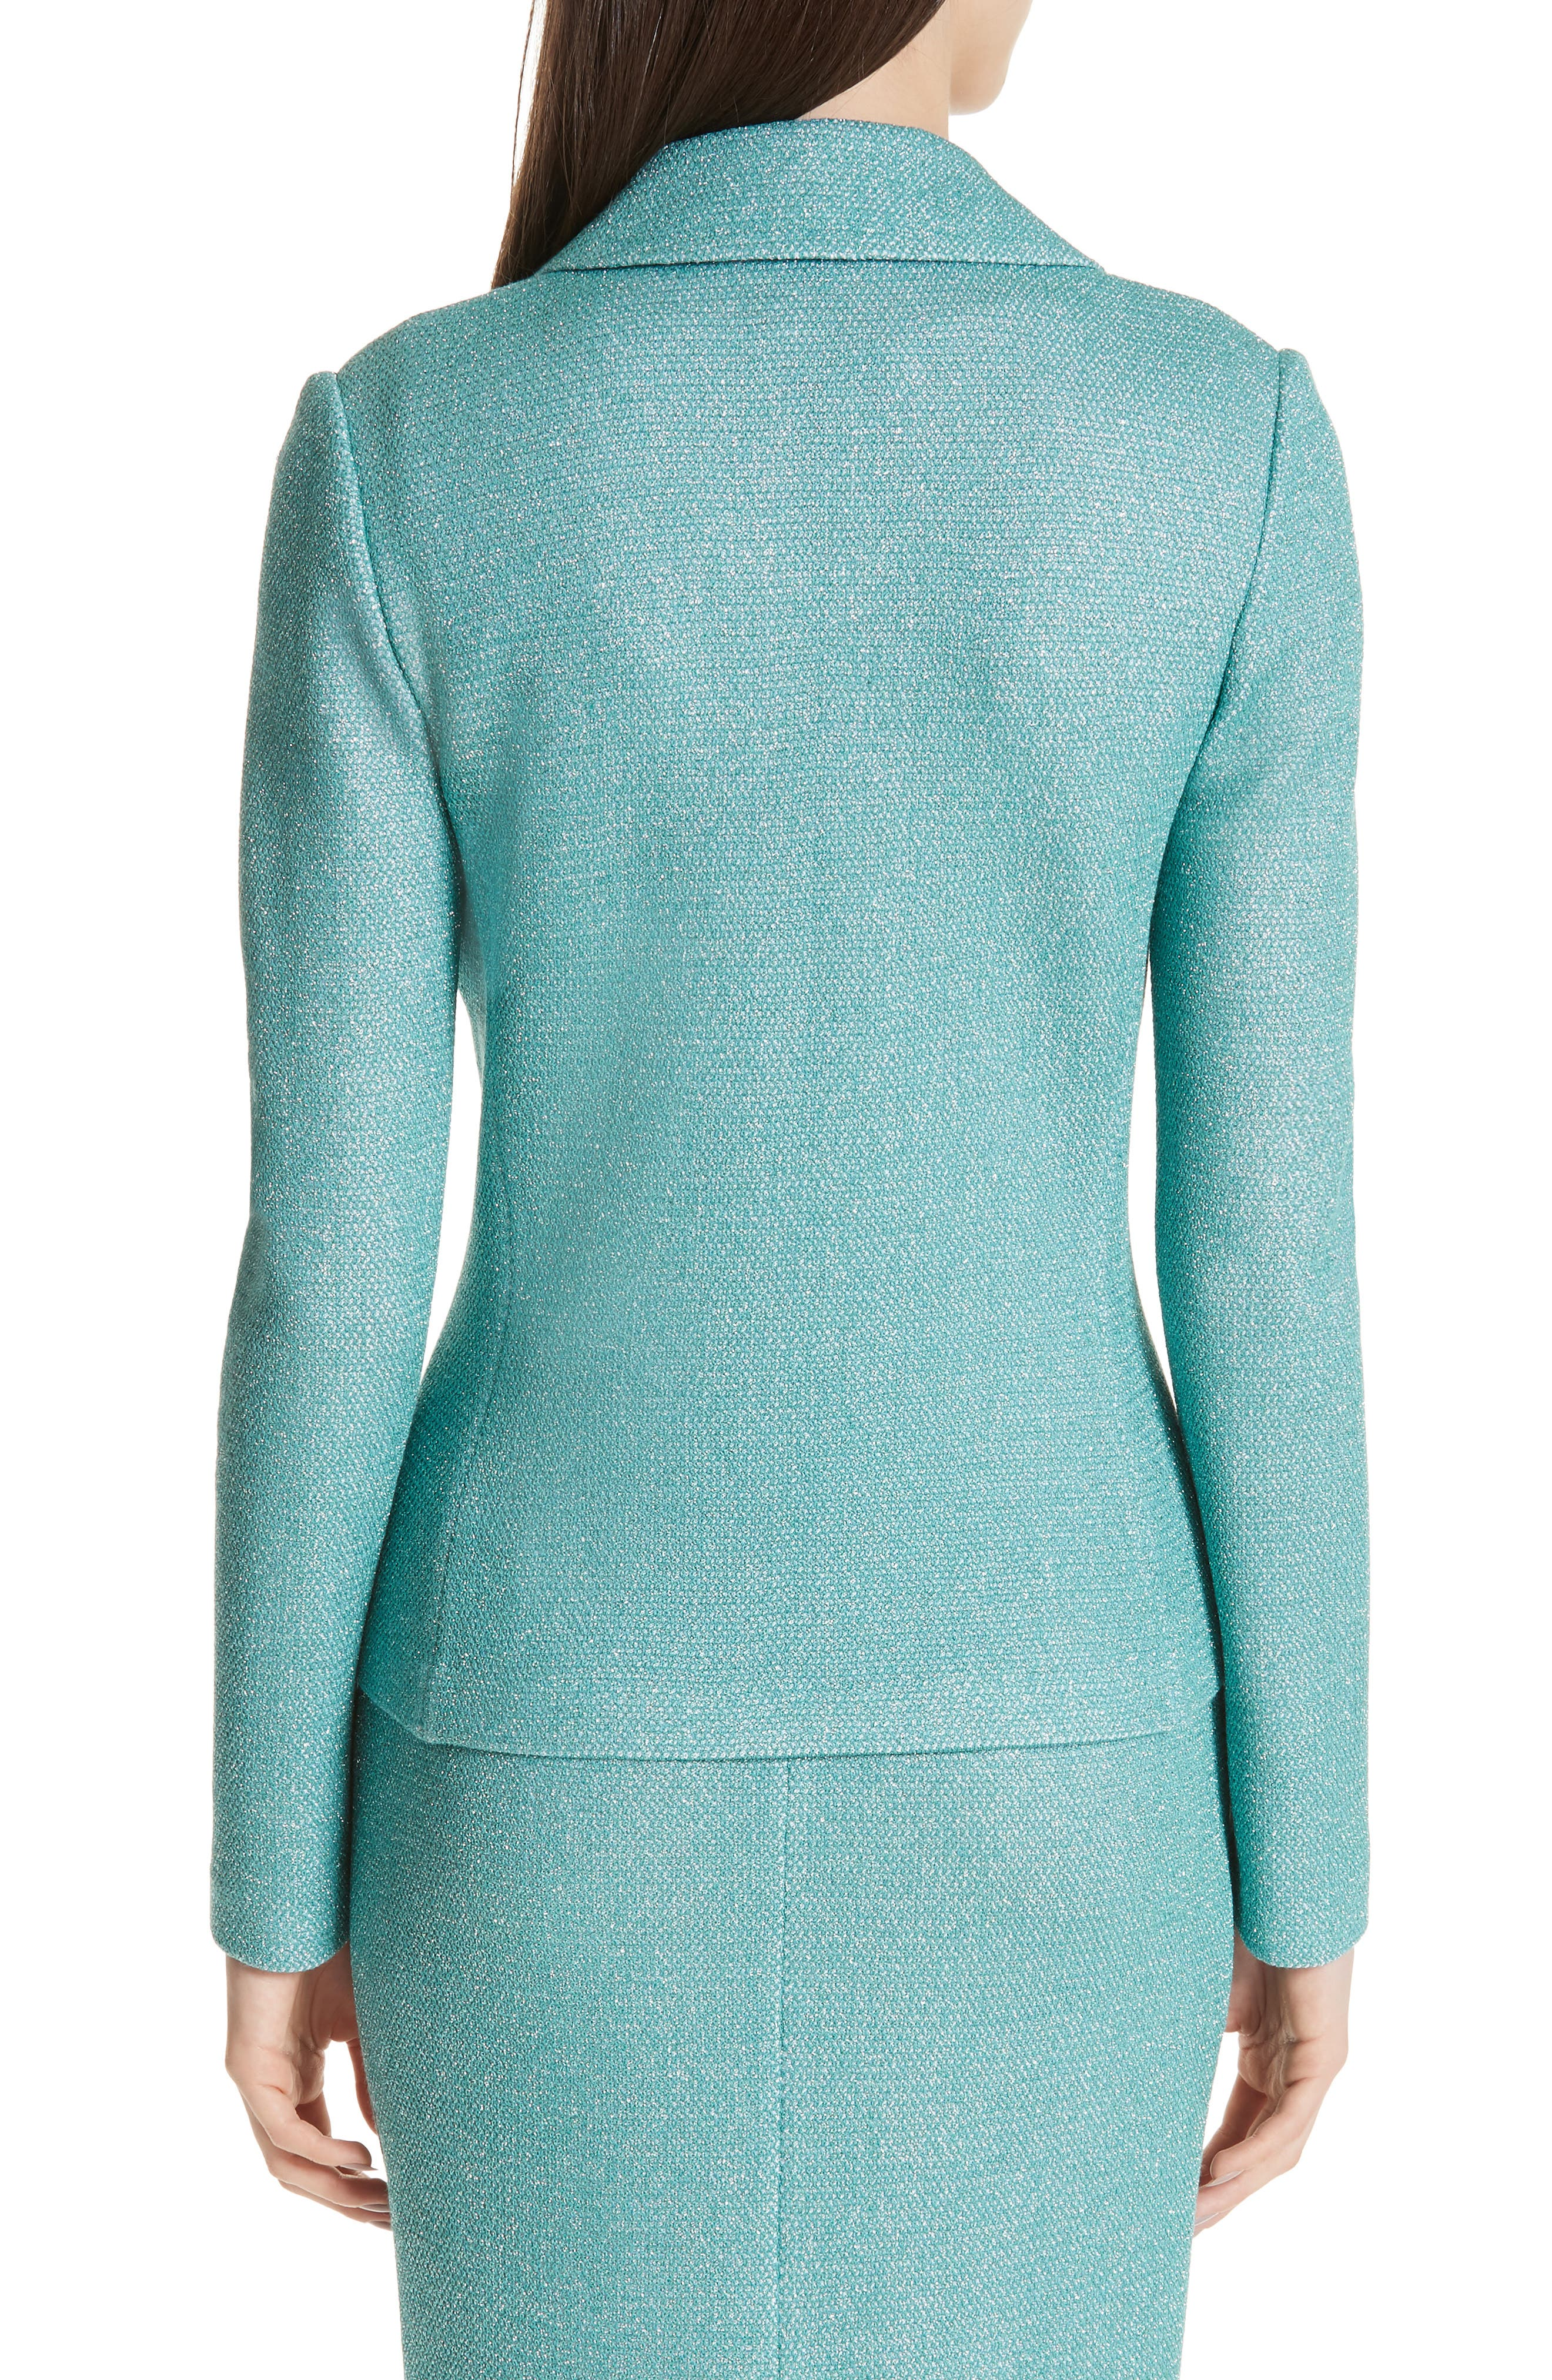 ST. JOHN COLLECTION, Bailey Knit Double Breasted Blazer, Alternate thumbnail 2, color, LAGOON